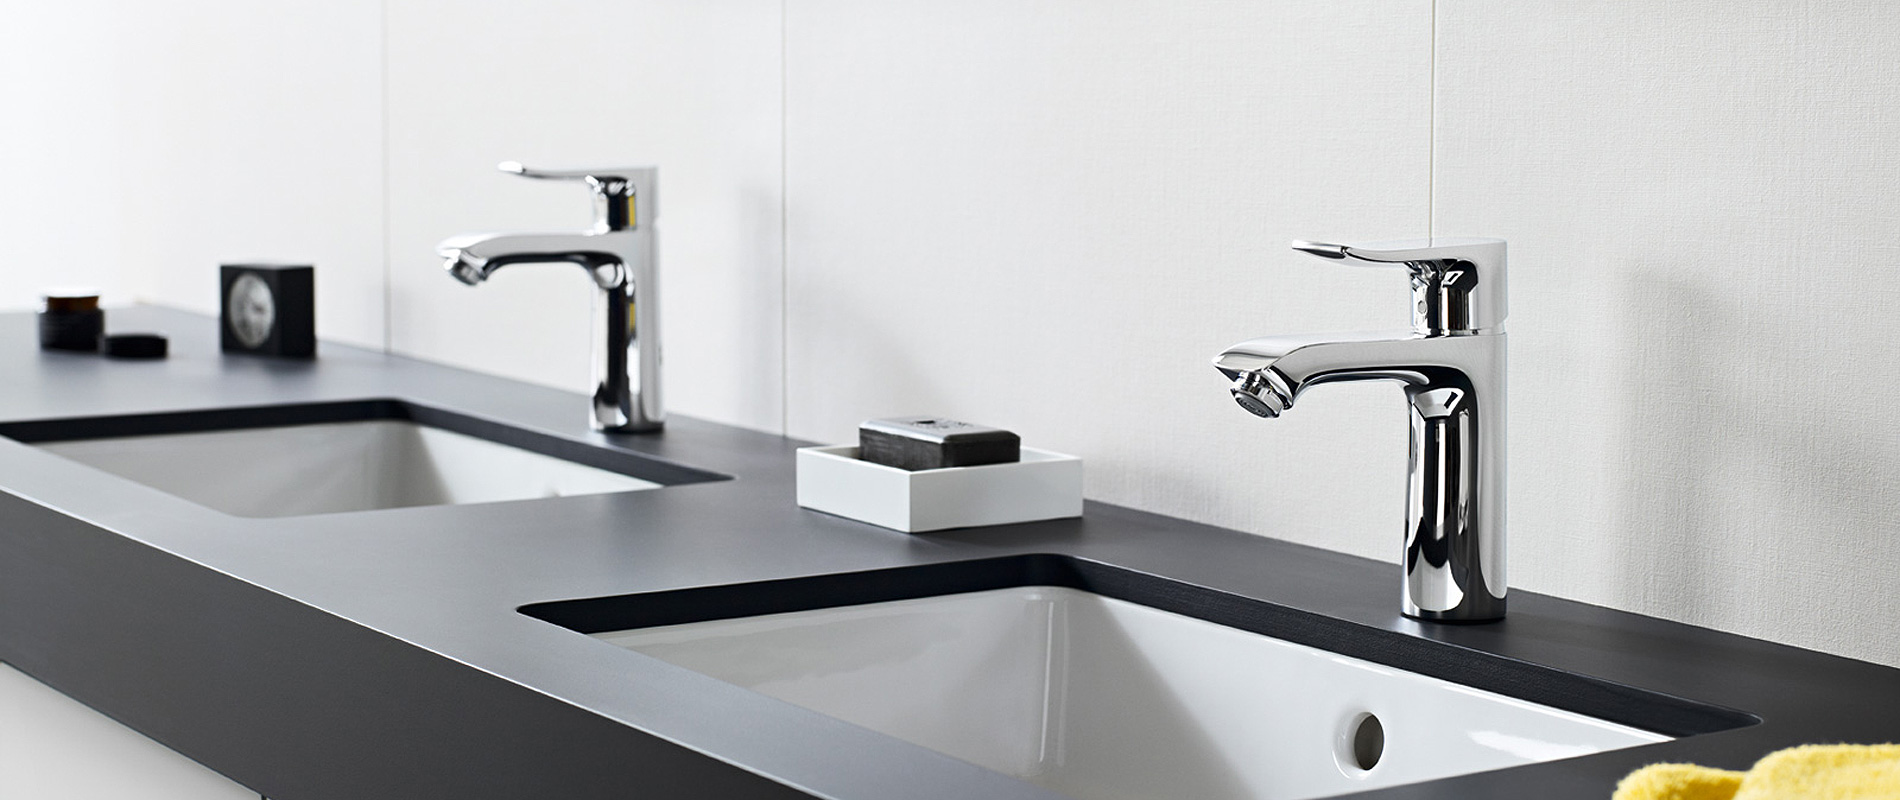 Ec1 Bathrooms Suppliers Of Quality Bathrooms At Affordable Prices